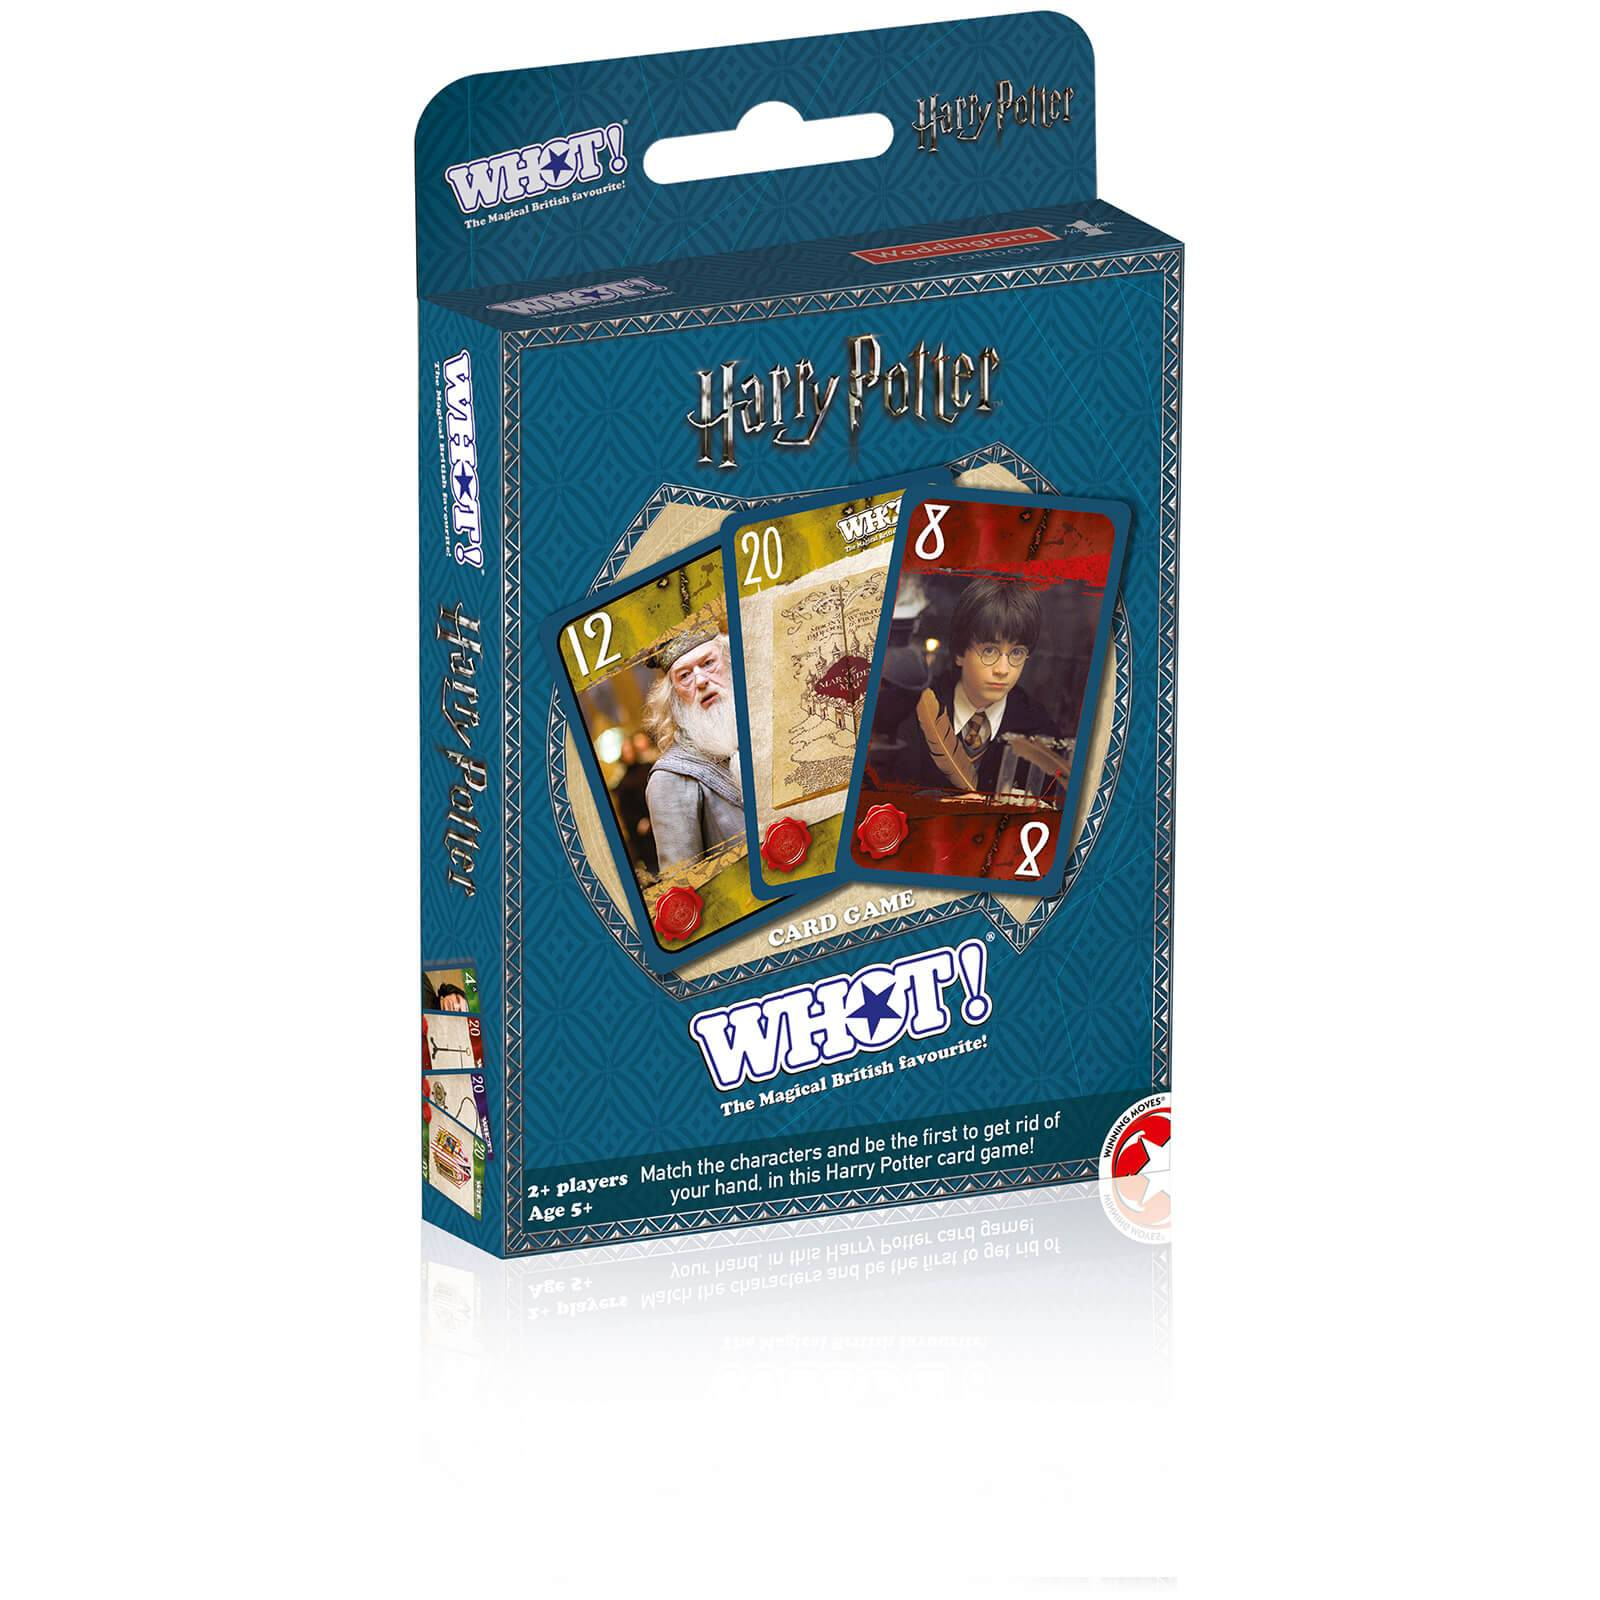 Winning Moves Top Card Tuck Box - Harry Potter Whot!